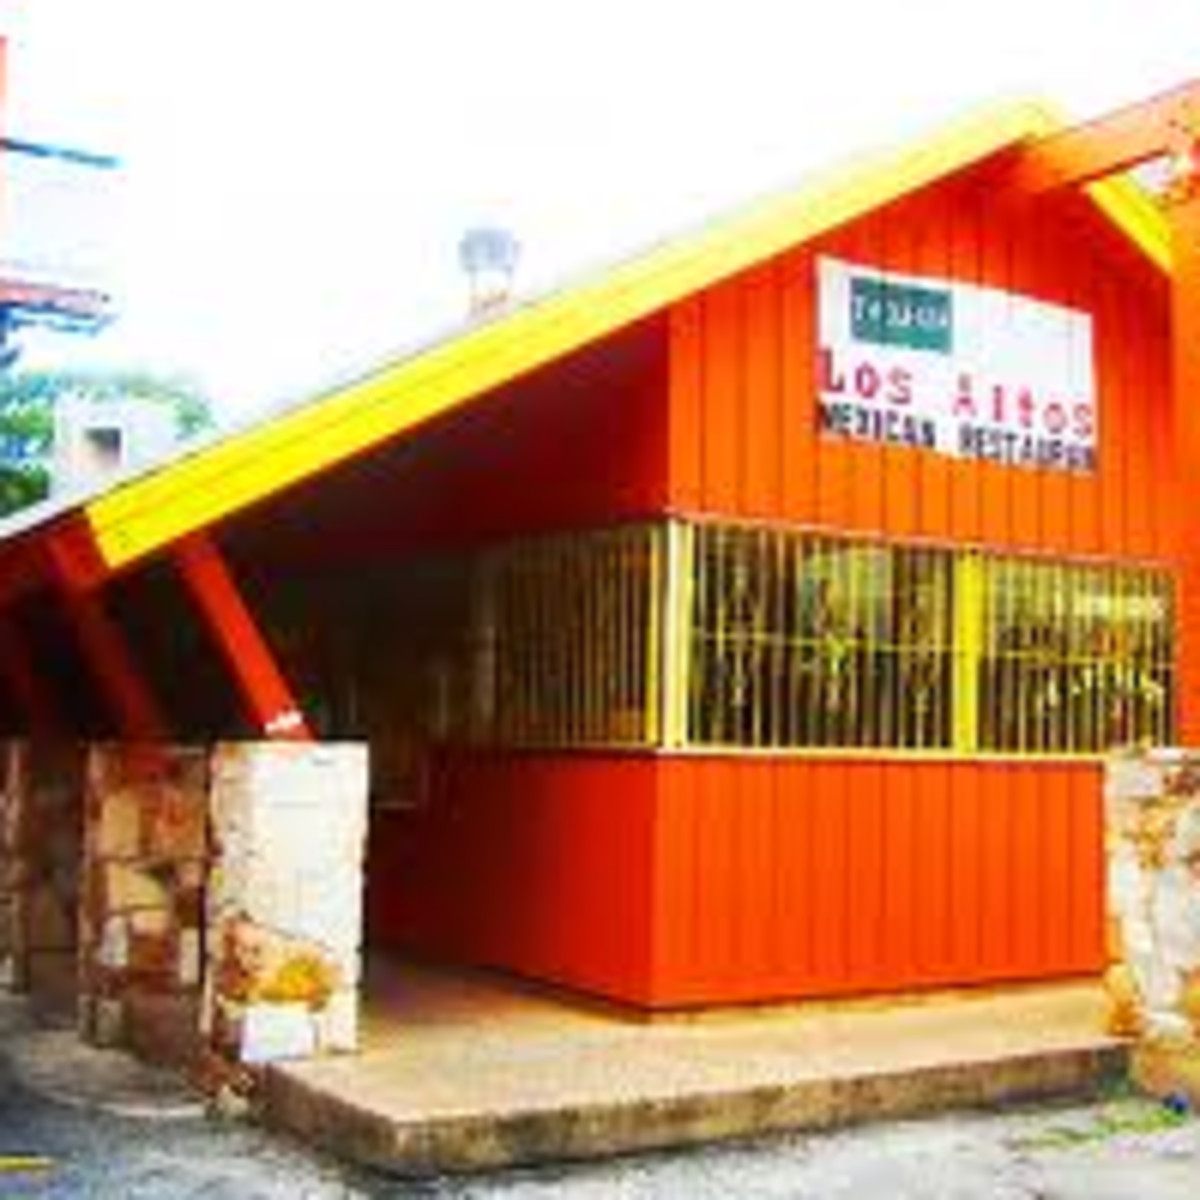 Austin_photo: places_food_los_altos_exterior